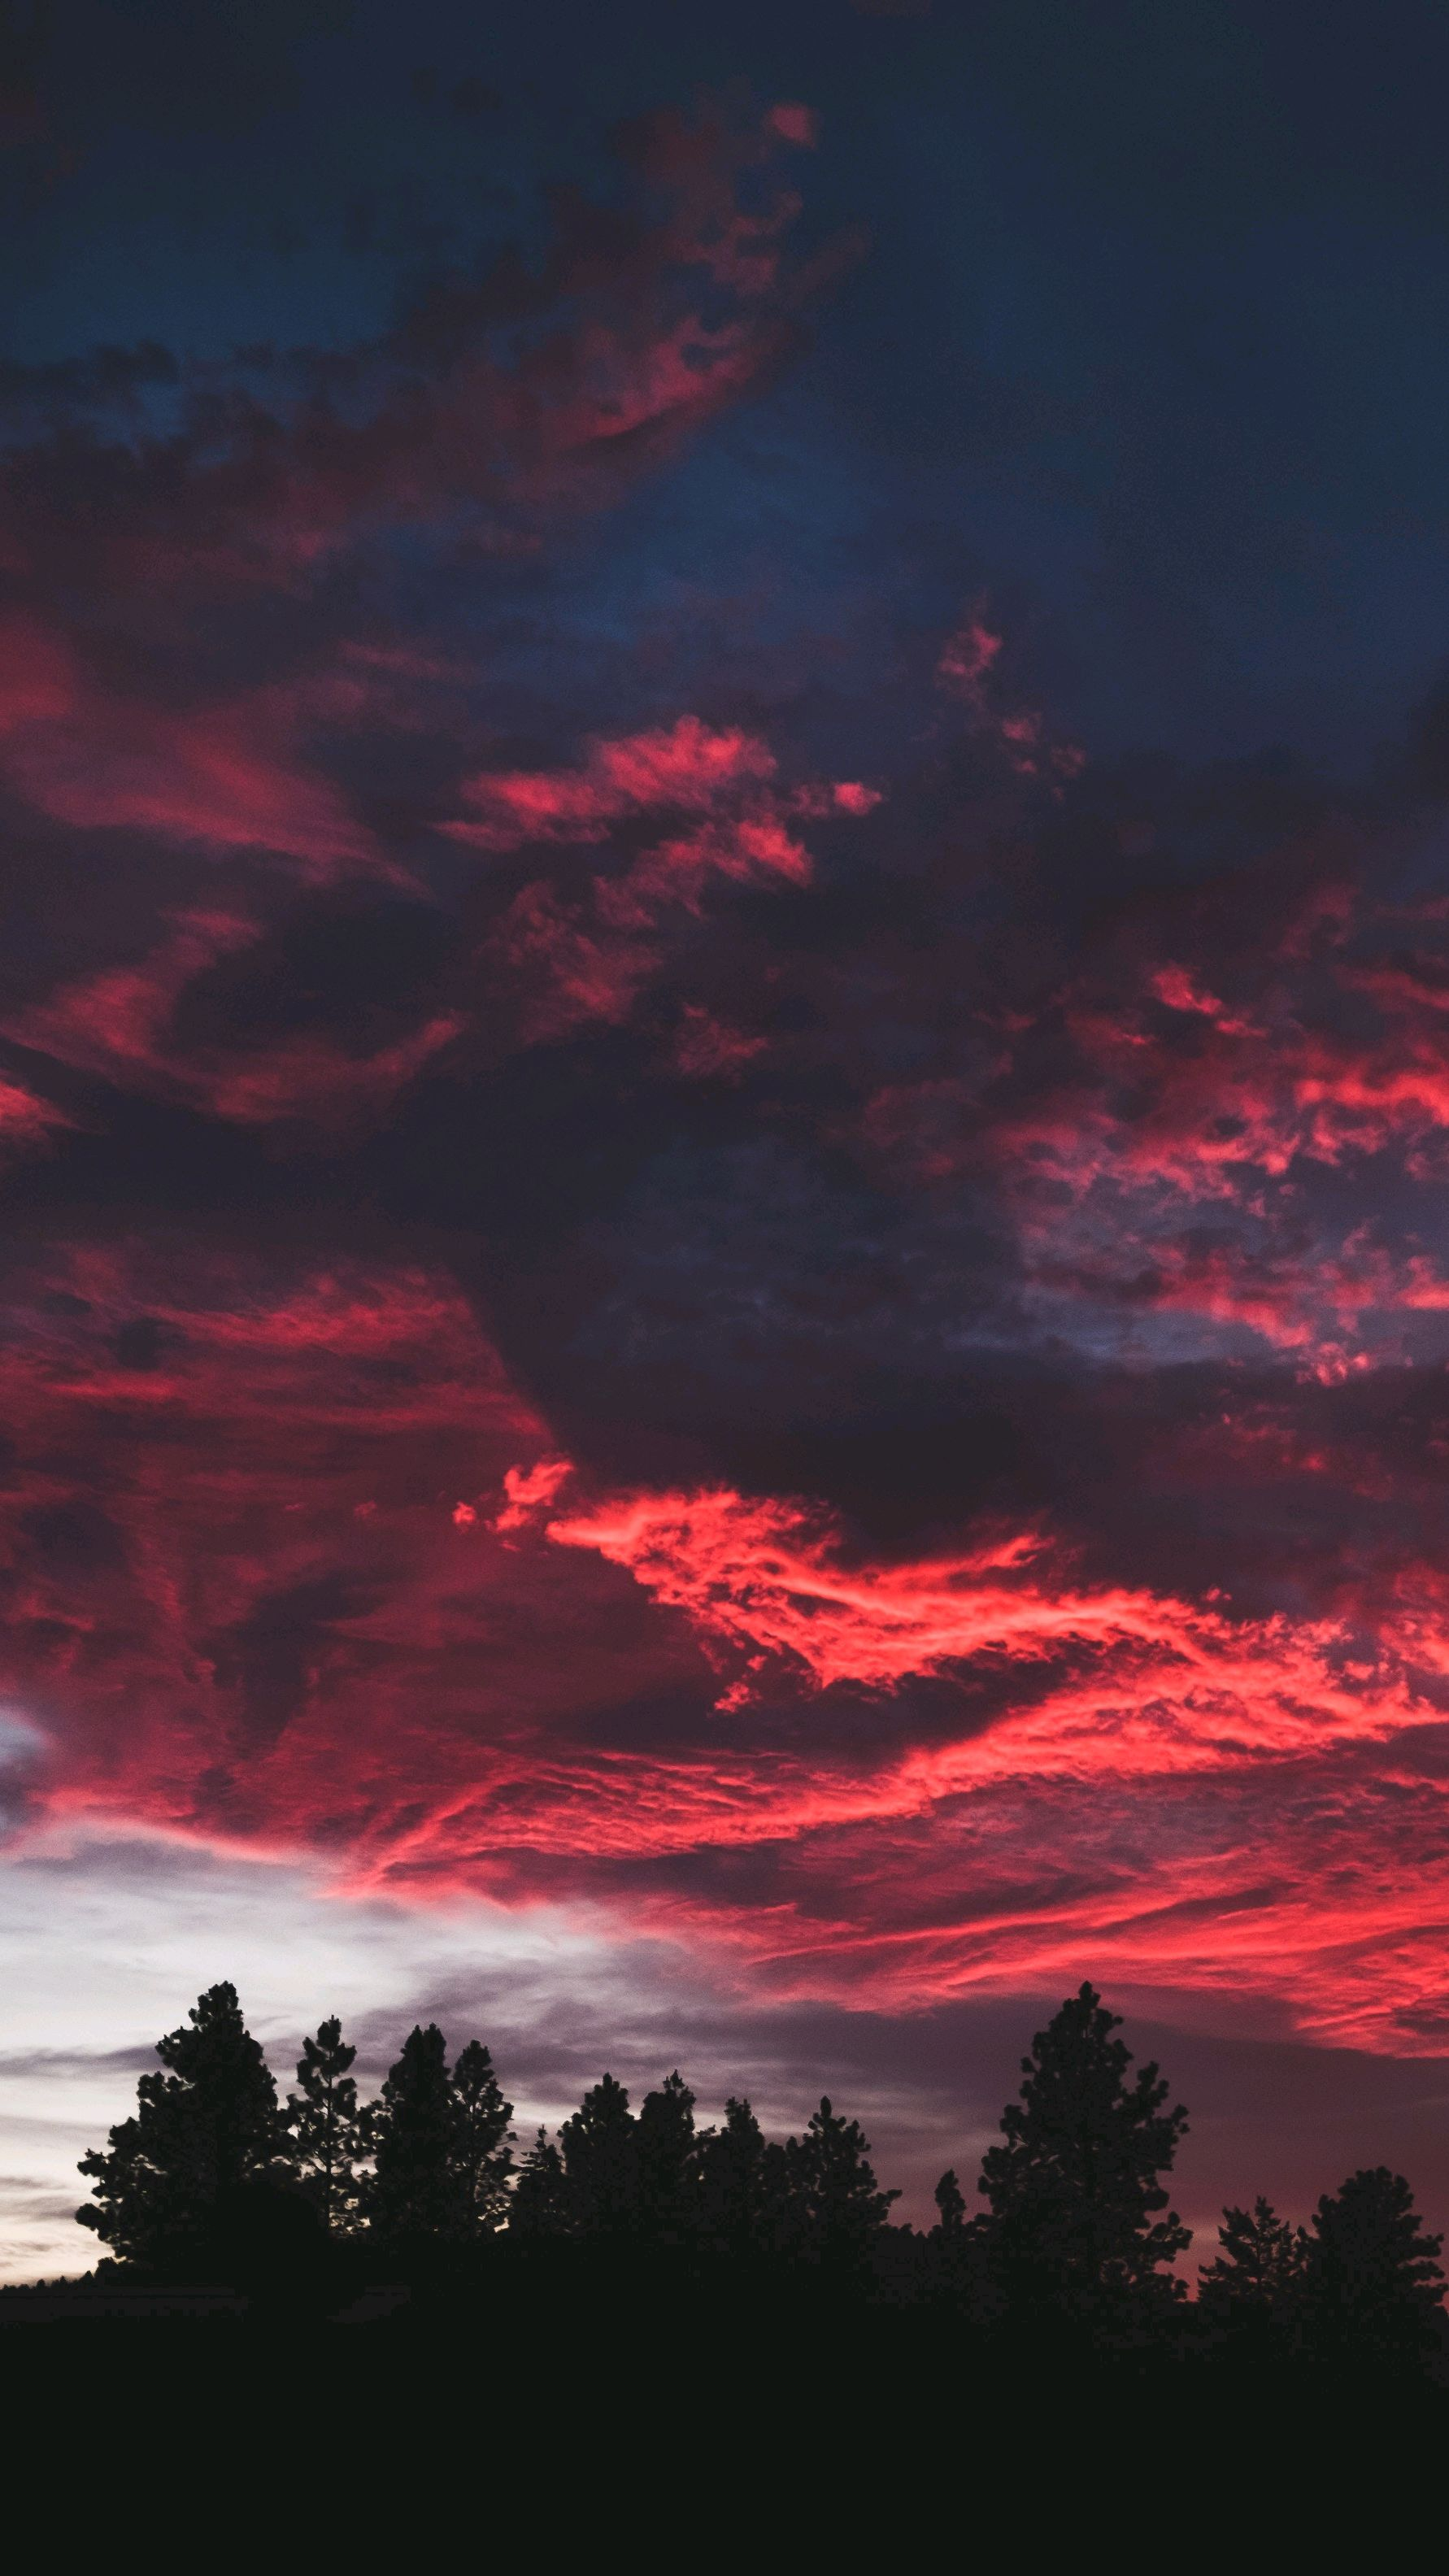 Cute Phone Wallpaper Download Red Clouds Sunset Nature Iphone Wallpaper Iphone Wallpapers